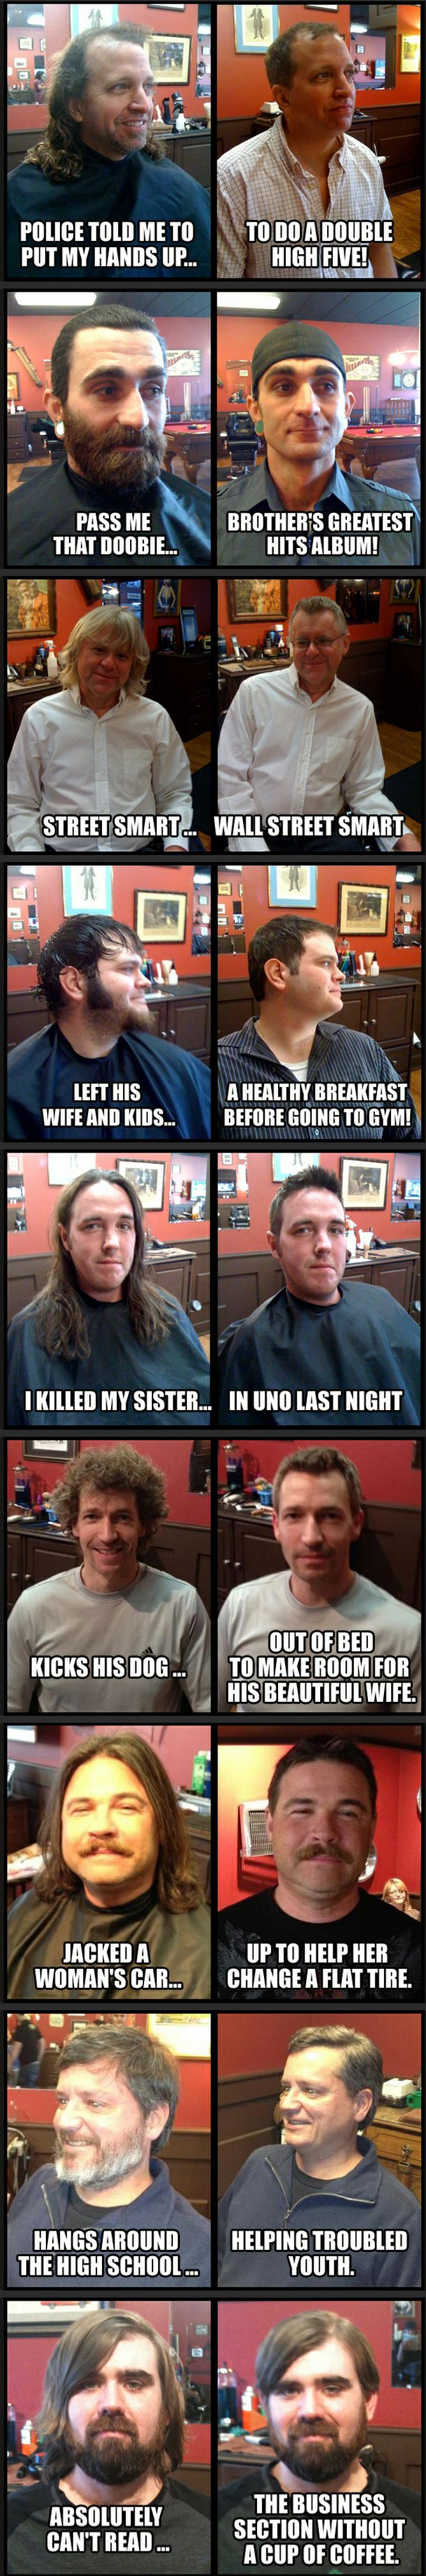 Haircuts are important.